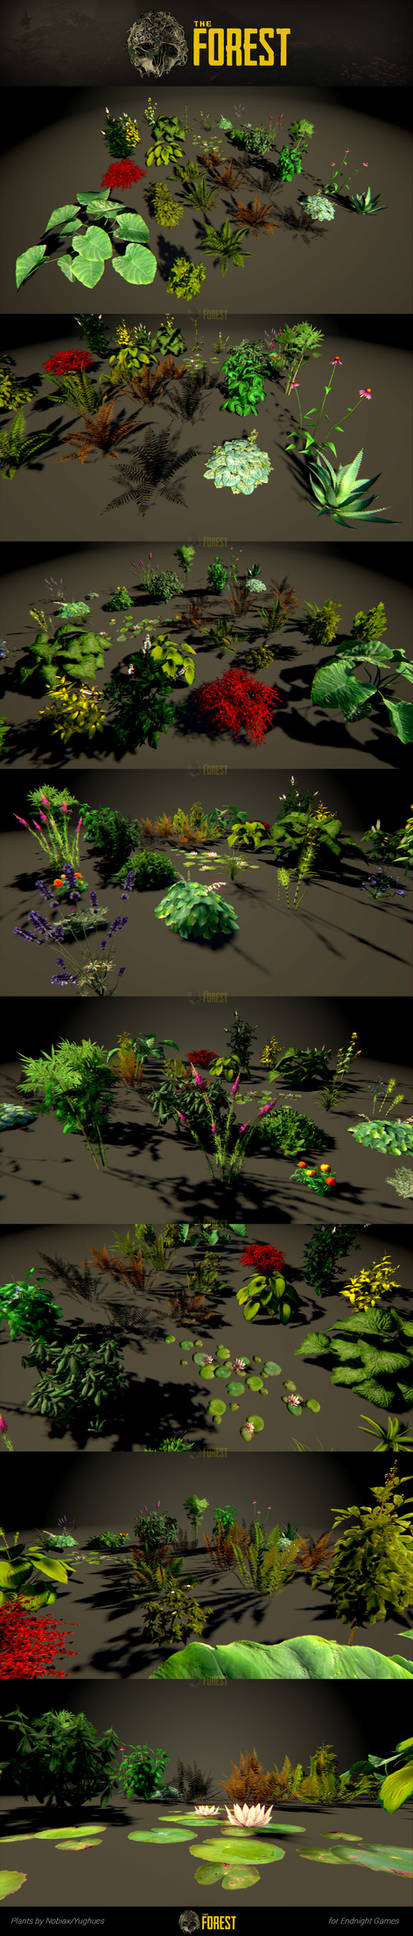 The Forest : plants showcase